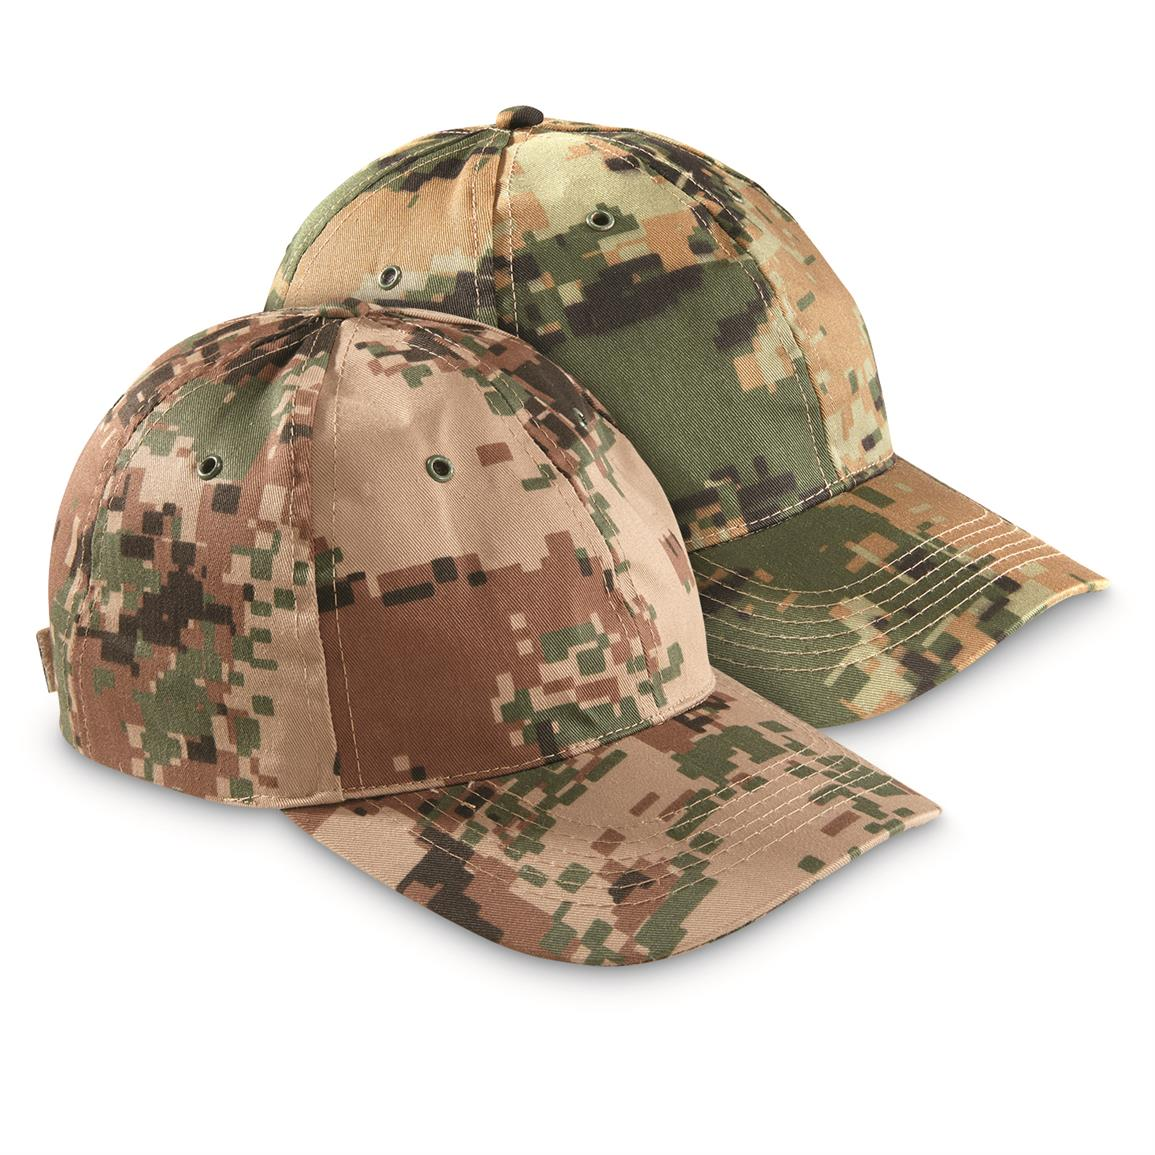 Jordanian Military Surplus Ball Caps, 2 Pack